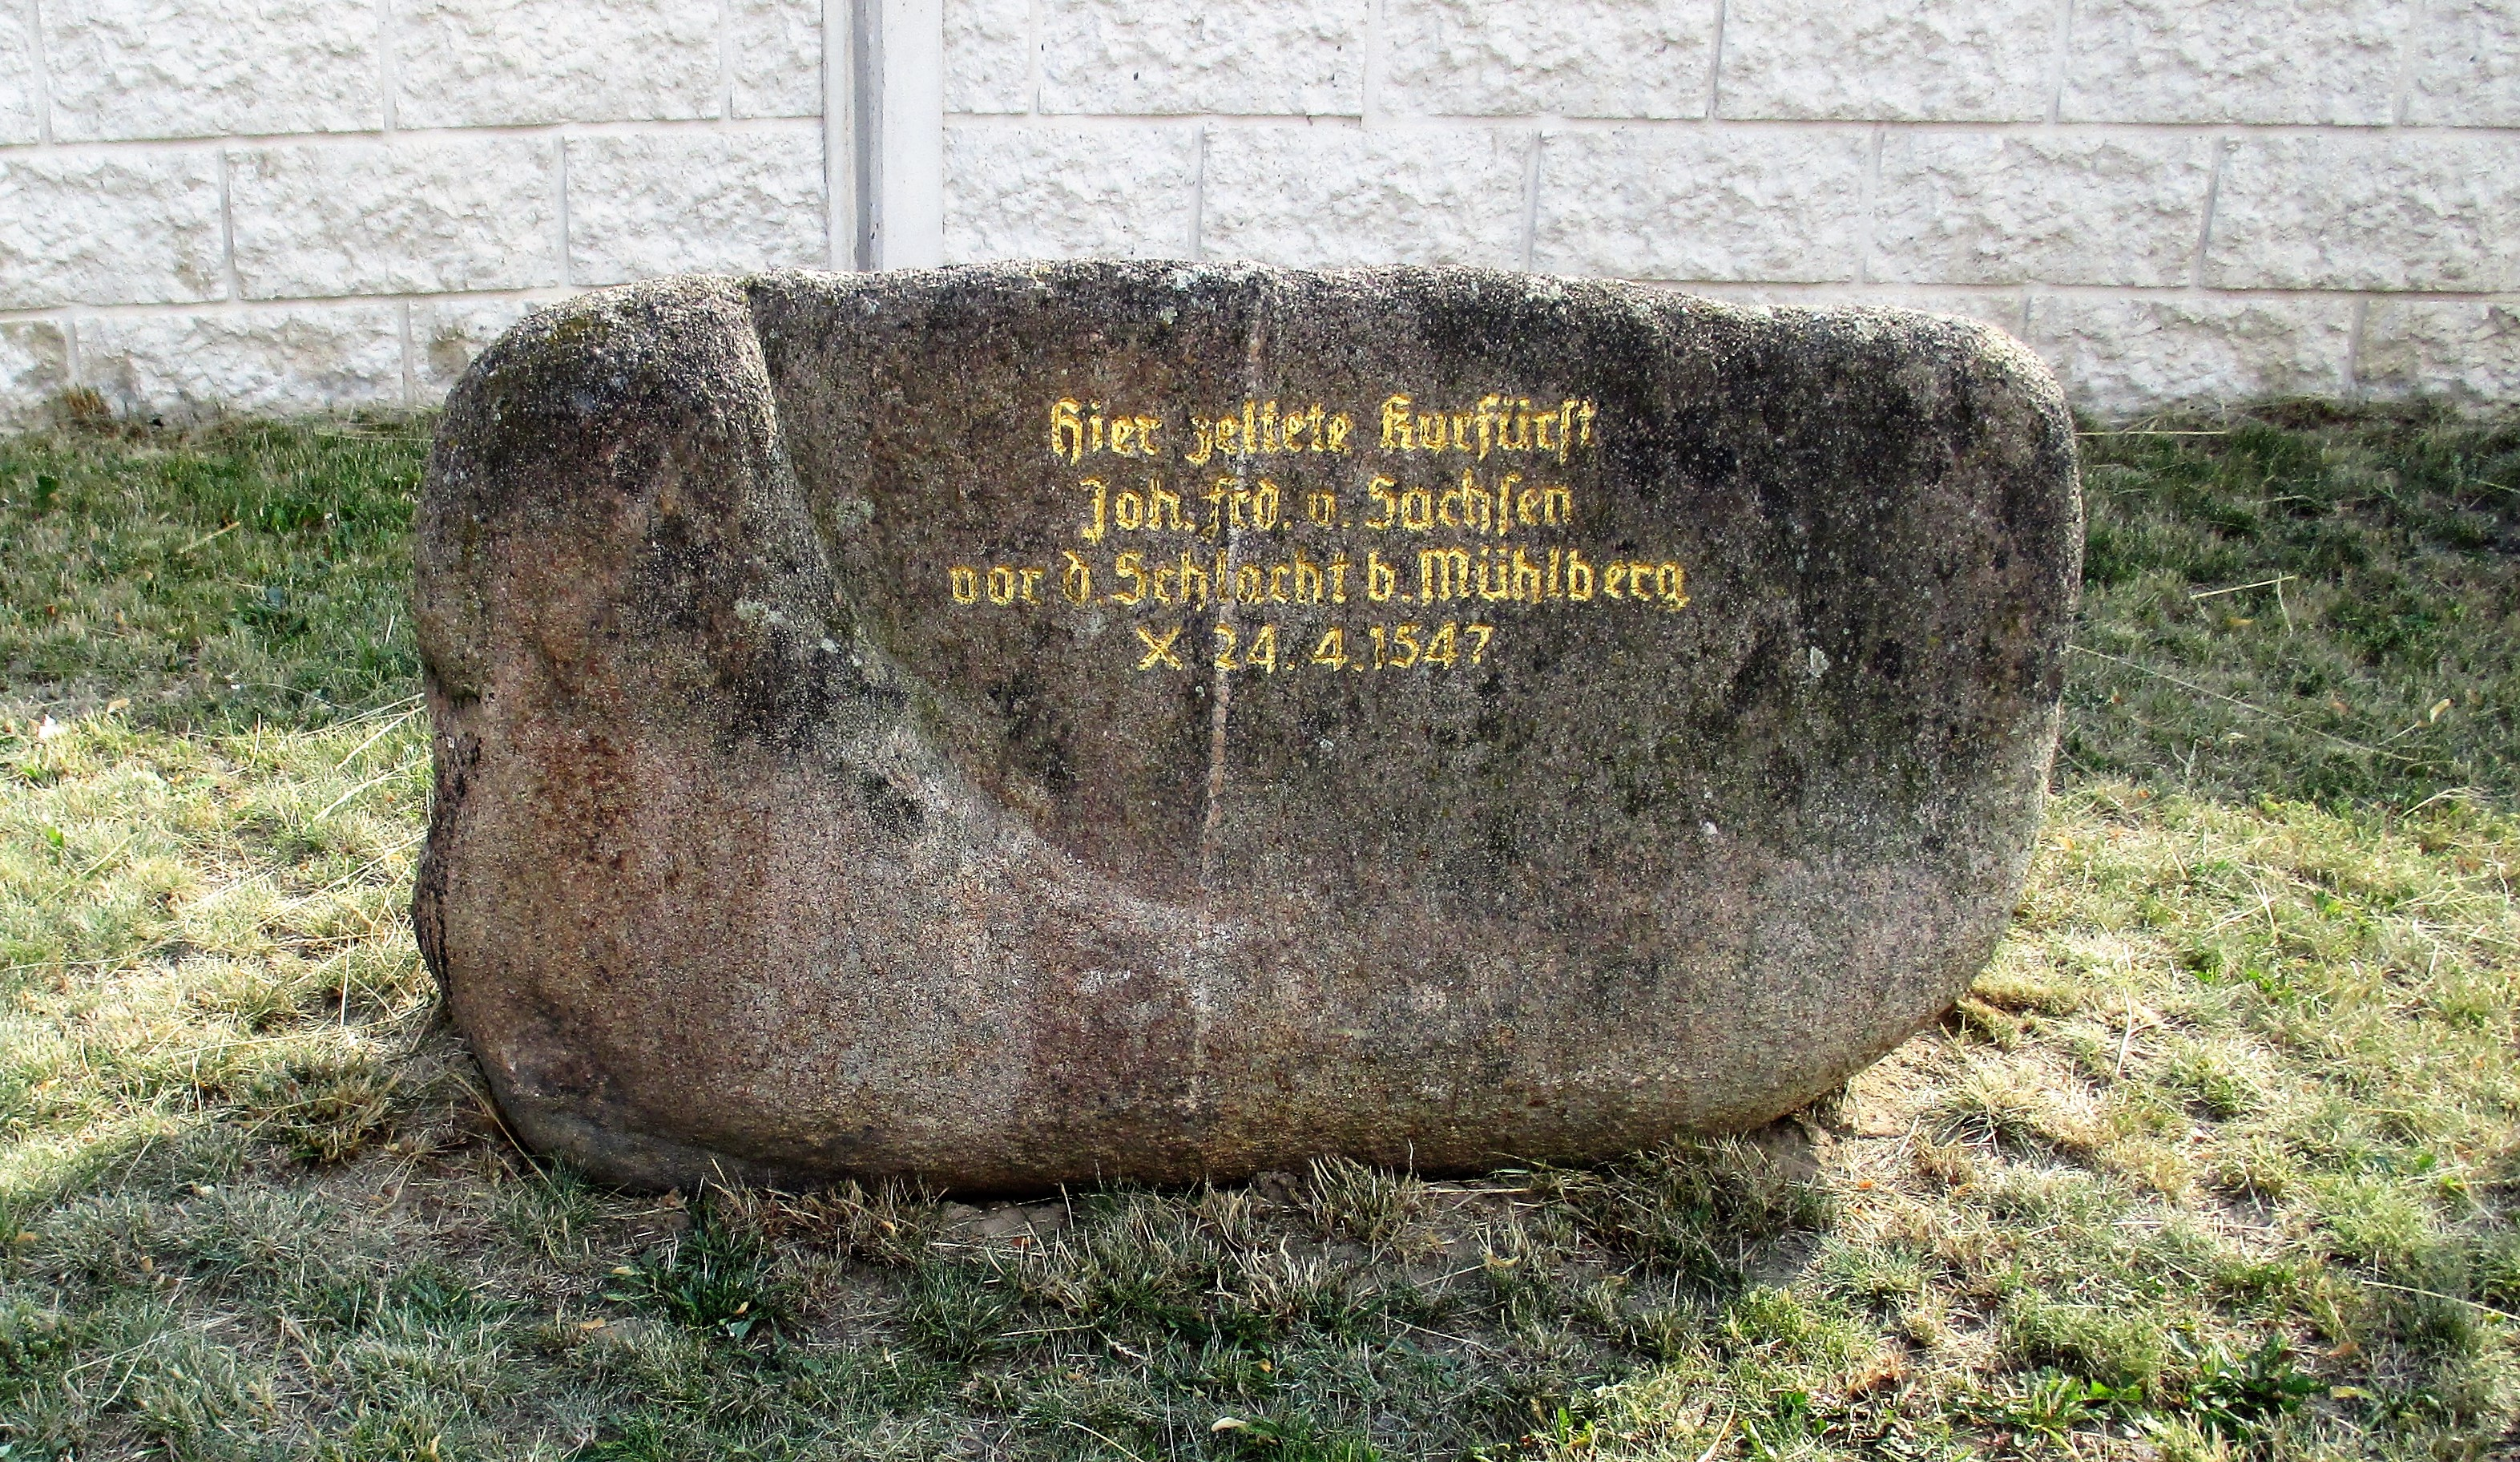 Memorial stone marking the site of John Frederick's camp - 24th April 1547.